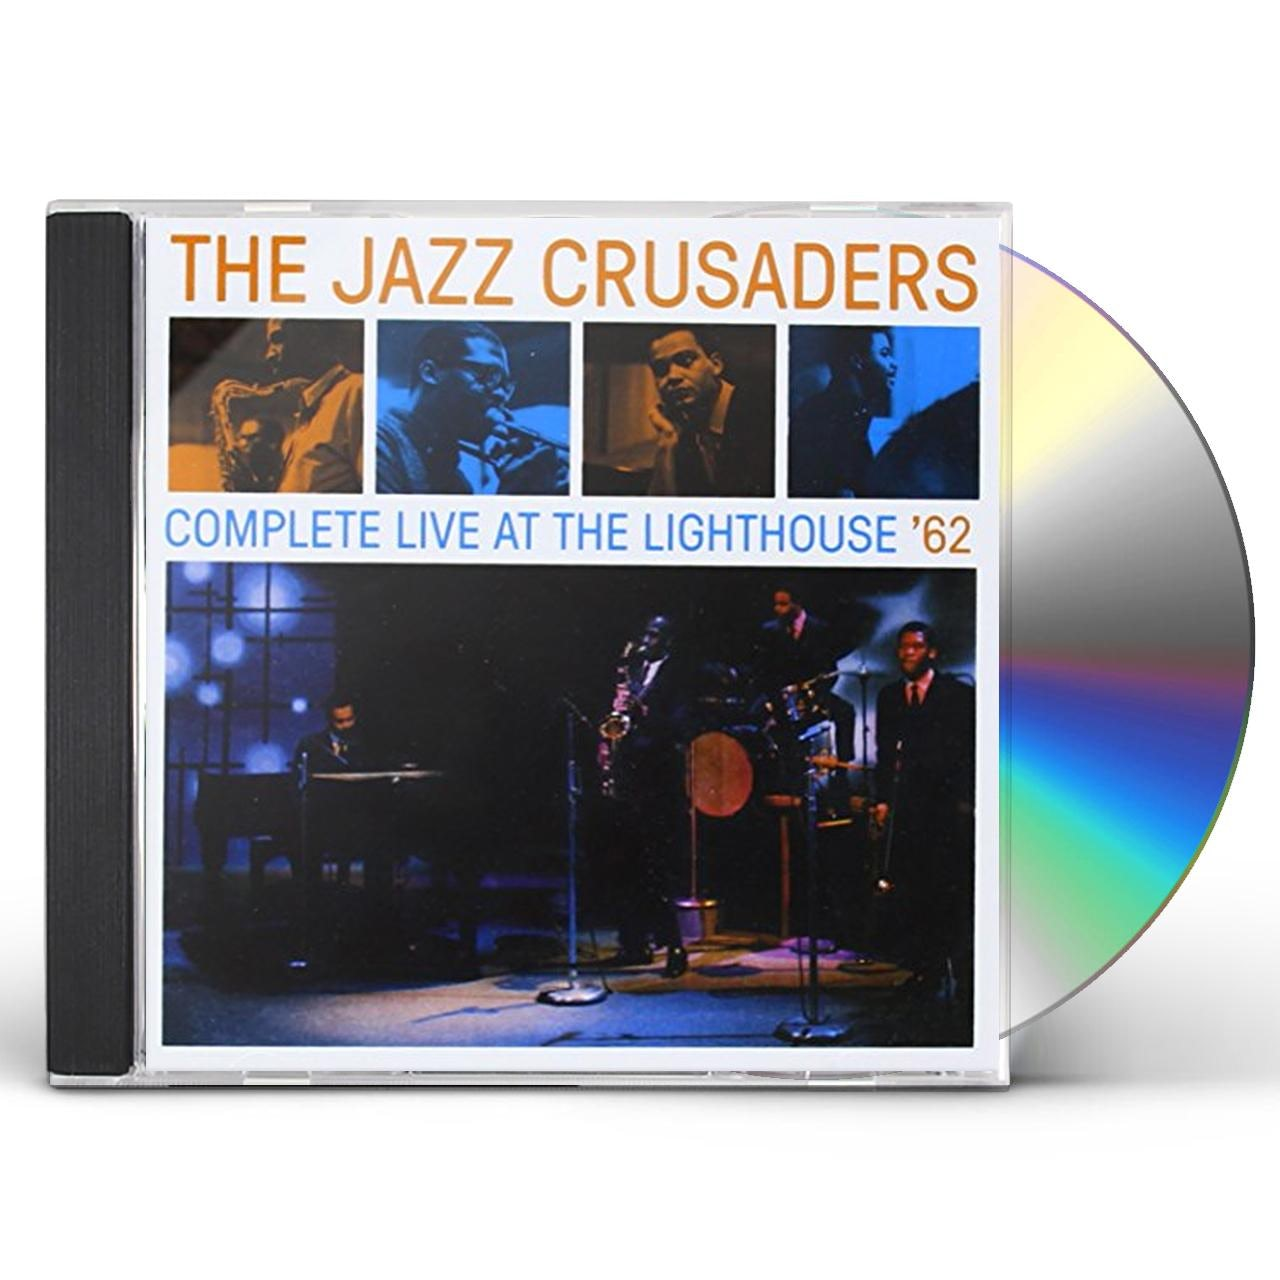 The Jazz Crusaders - CD Complete Live At The Lighthouse '62 (Reissue, Remastered, 24 Bit)